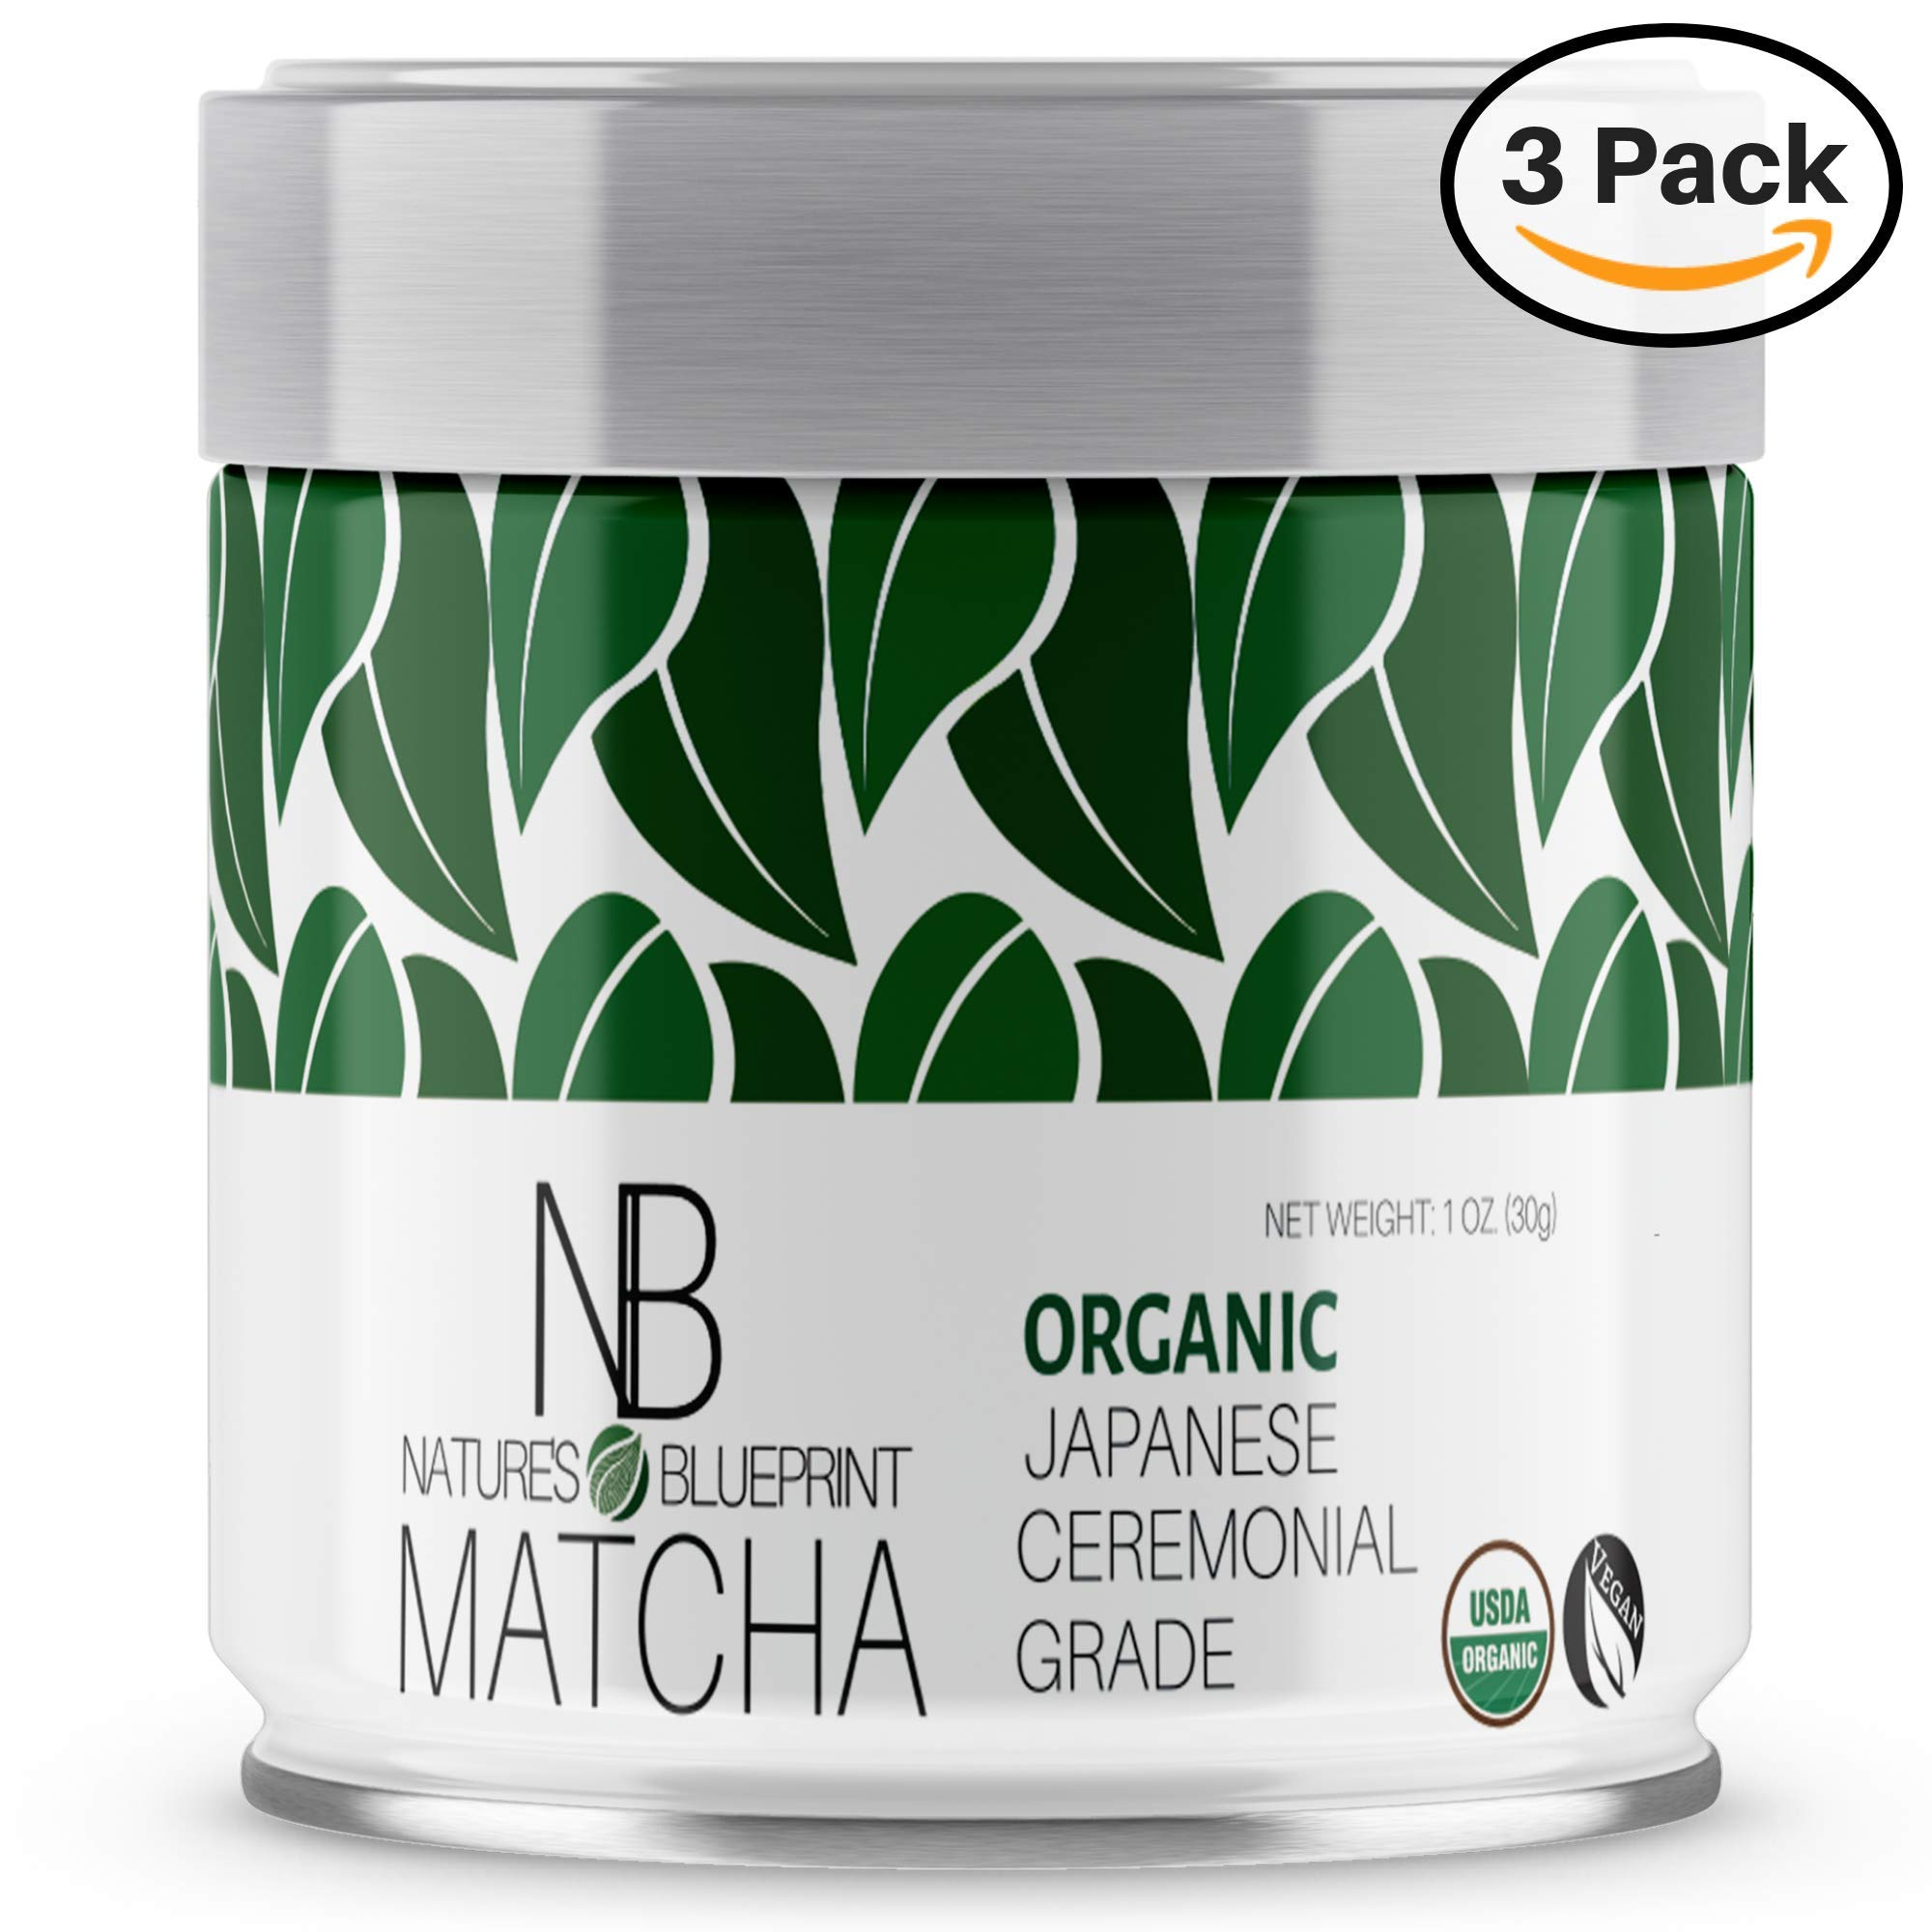 Matcha Green Tea Powder-3 Pk-Organic Japanese Ceremonial Grade Straight from Uji Kyoto, Premium Quality-3 oz BUNDLE contains Powerful Antioxidant Energy for NON-GMO Health. …